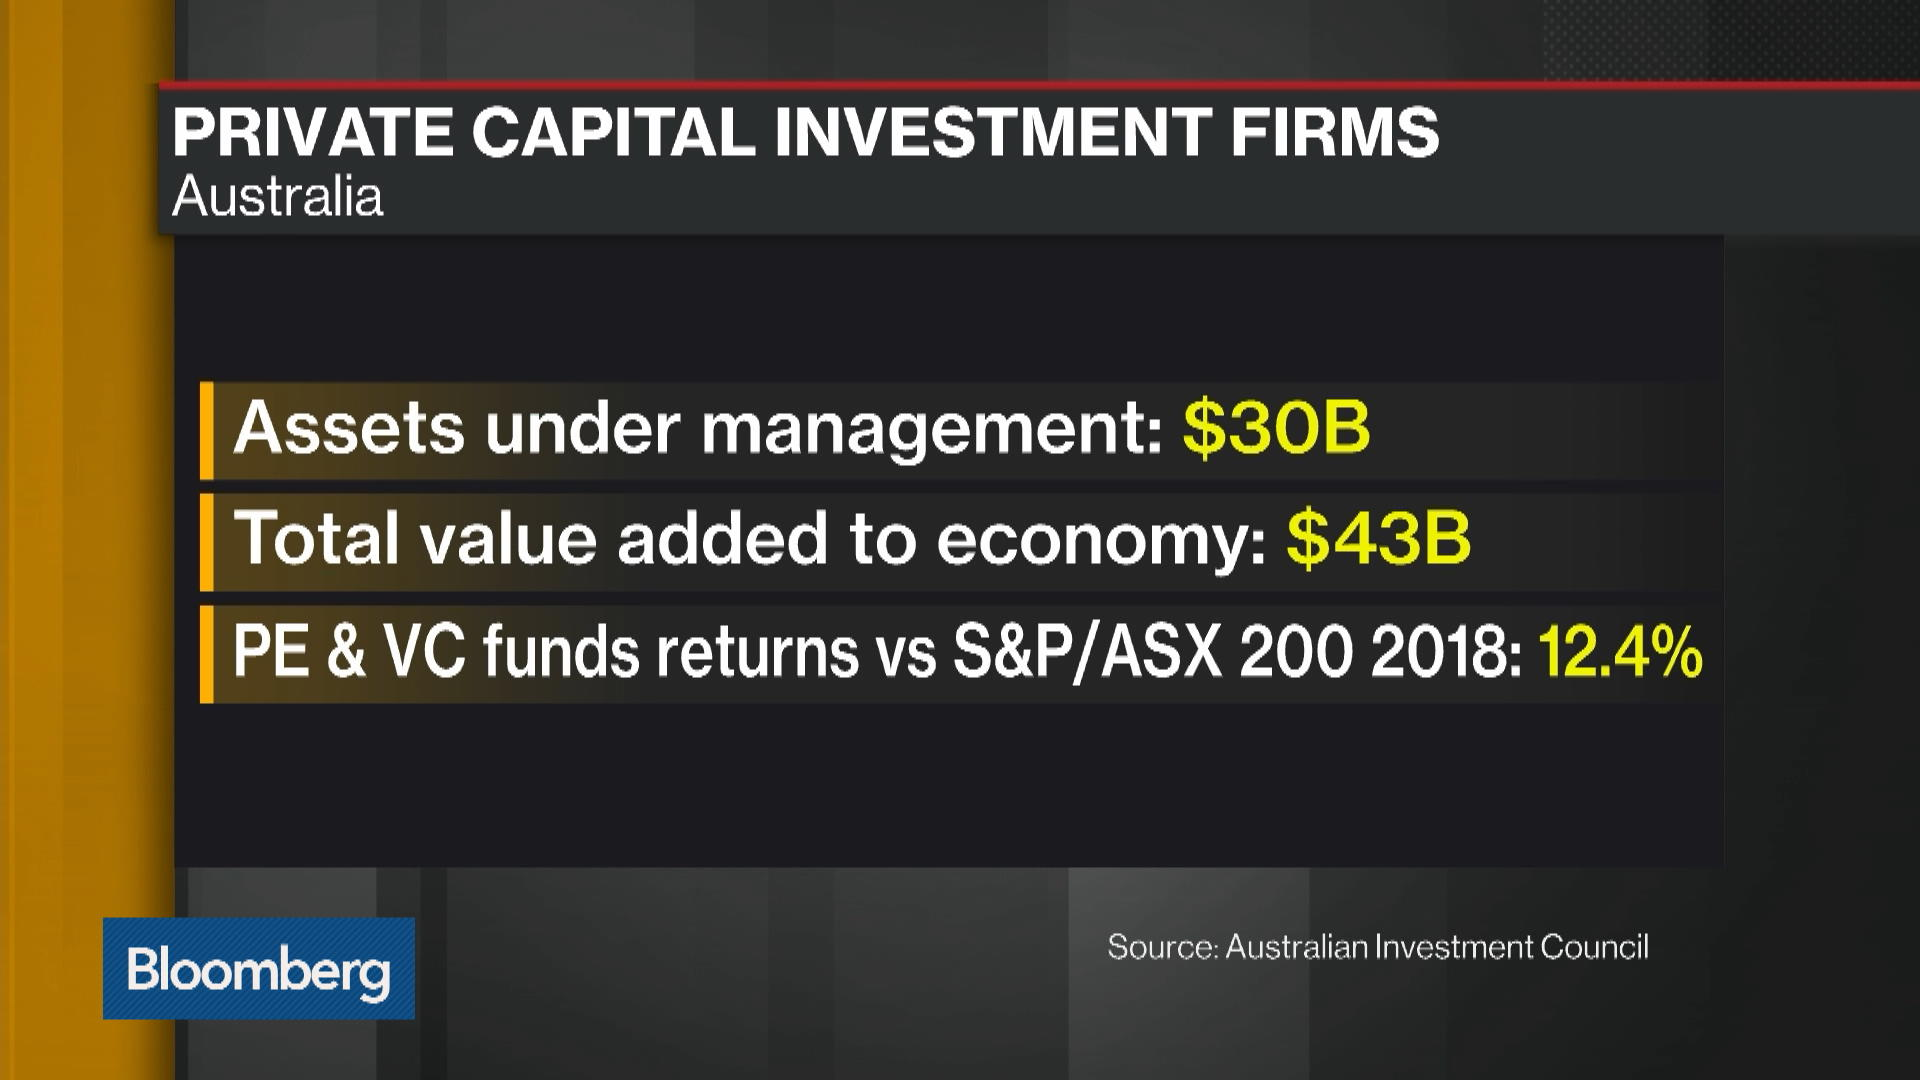 Venture Capital Is New Buzz Word for Australia's Pension Funds